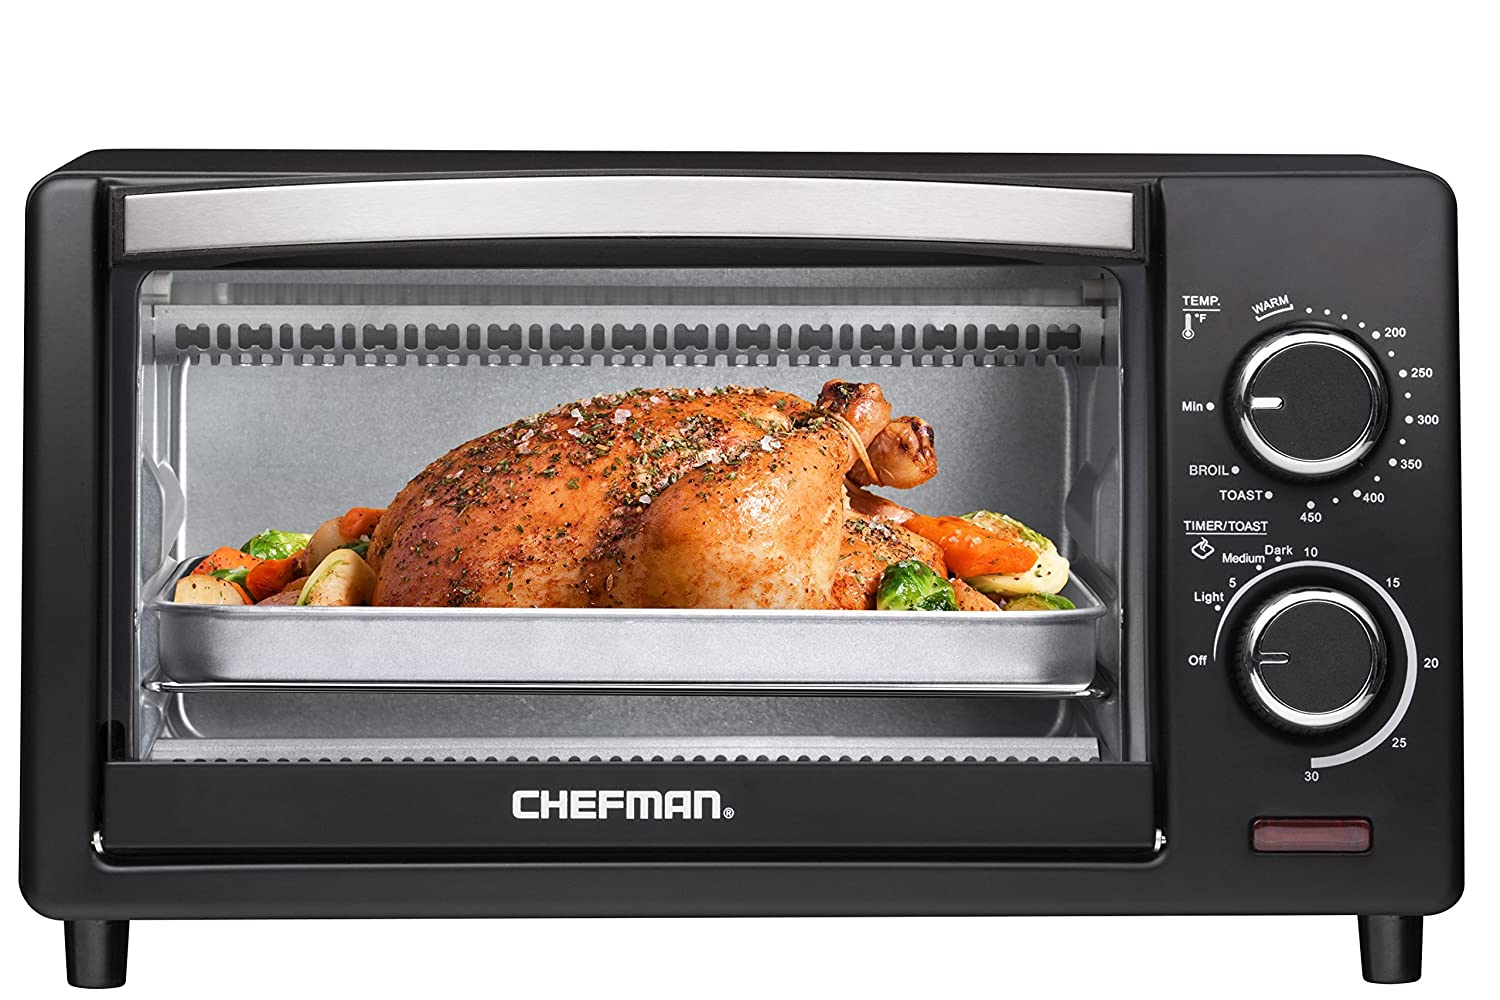 Chefman 4 Slice Countertop Toaster Oven w/ Variable Temperature Control and 30 Minute Timer; Cooking Functions to Bake, Broil, Toast and Keep Warm – Black